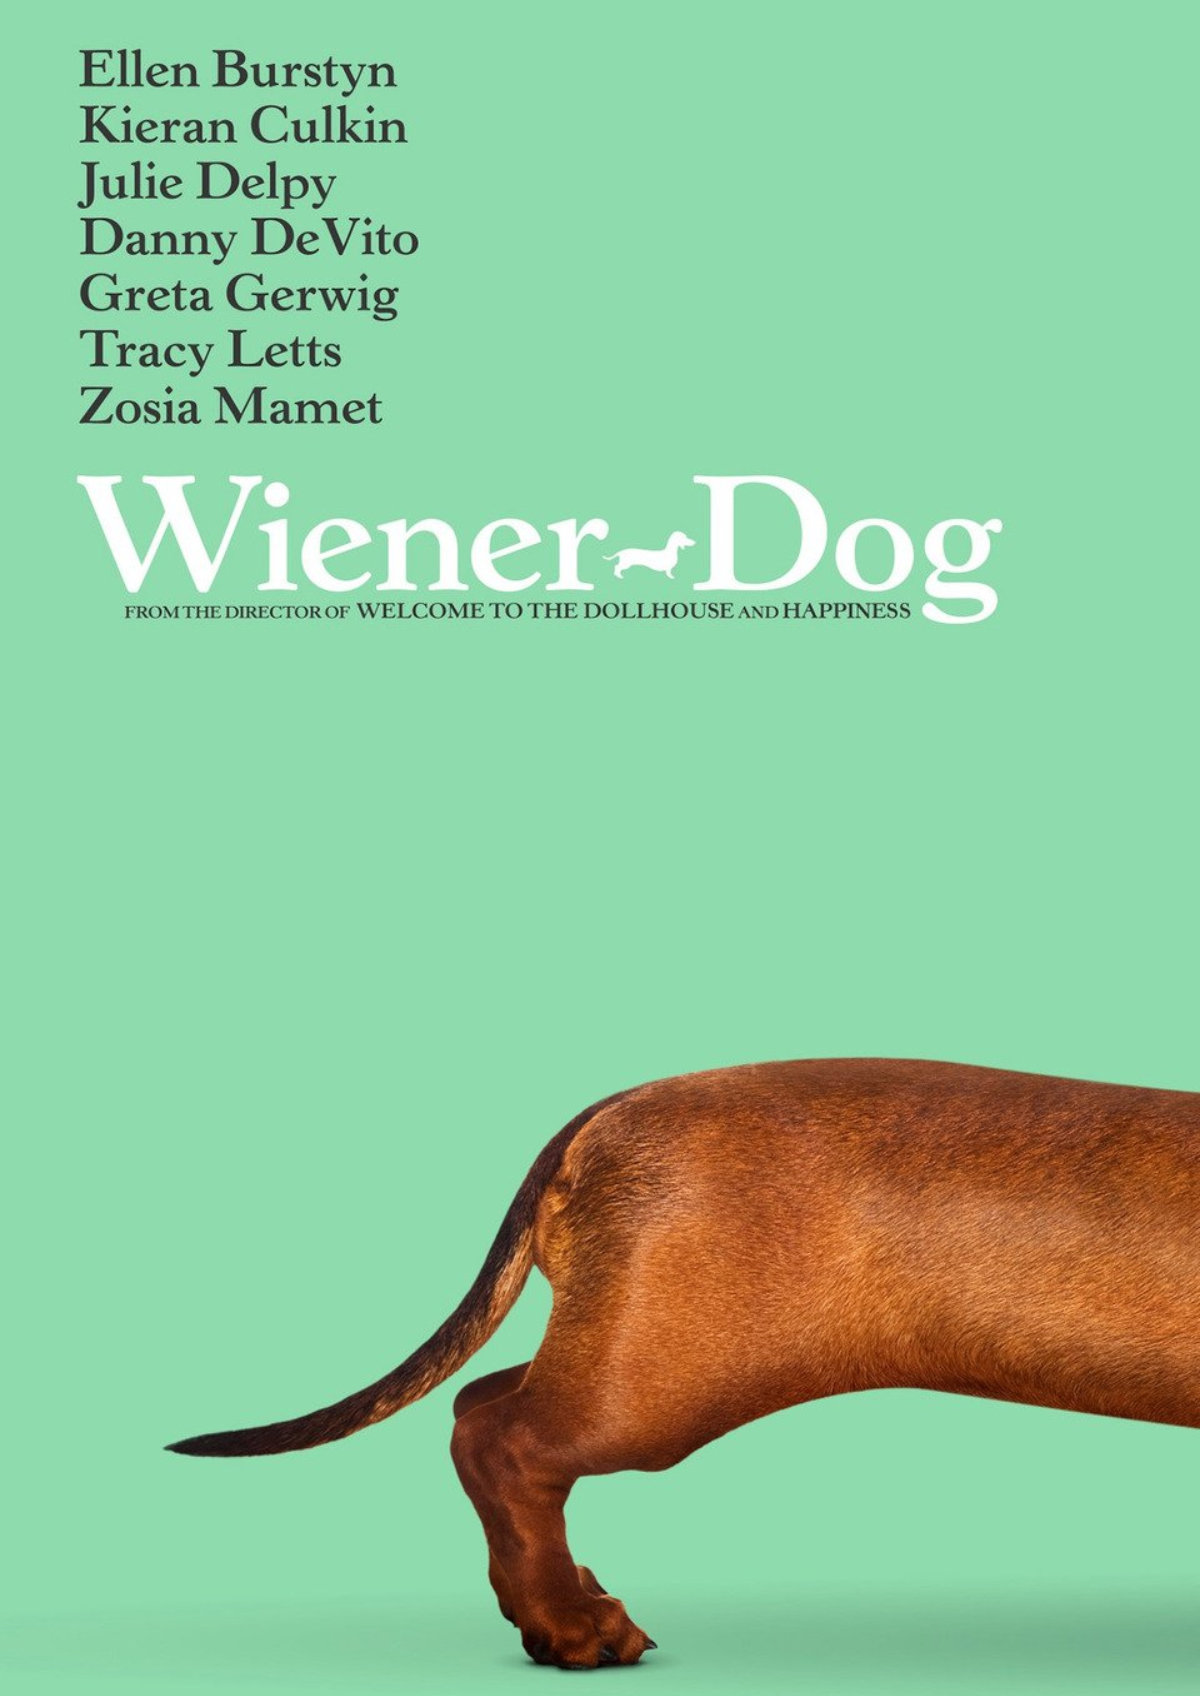 'Wiener-Dog' movie poster